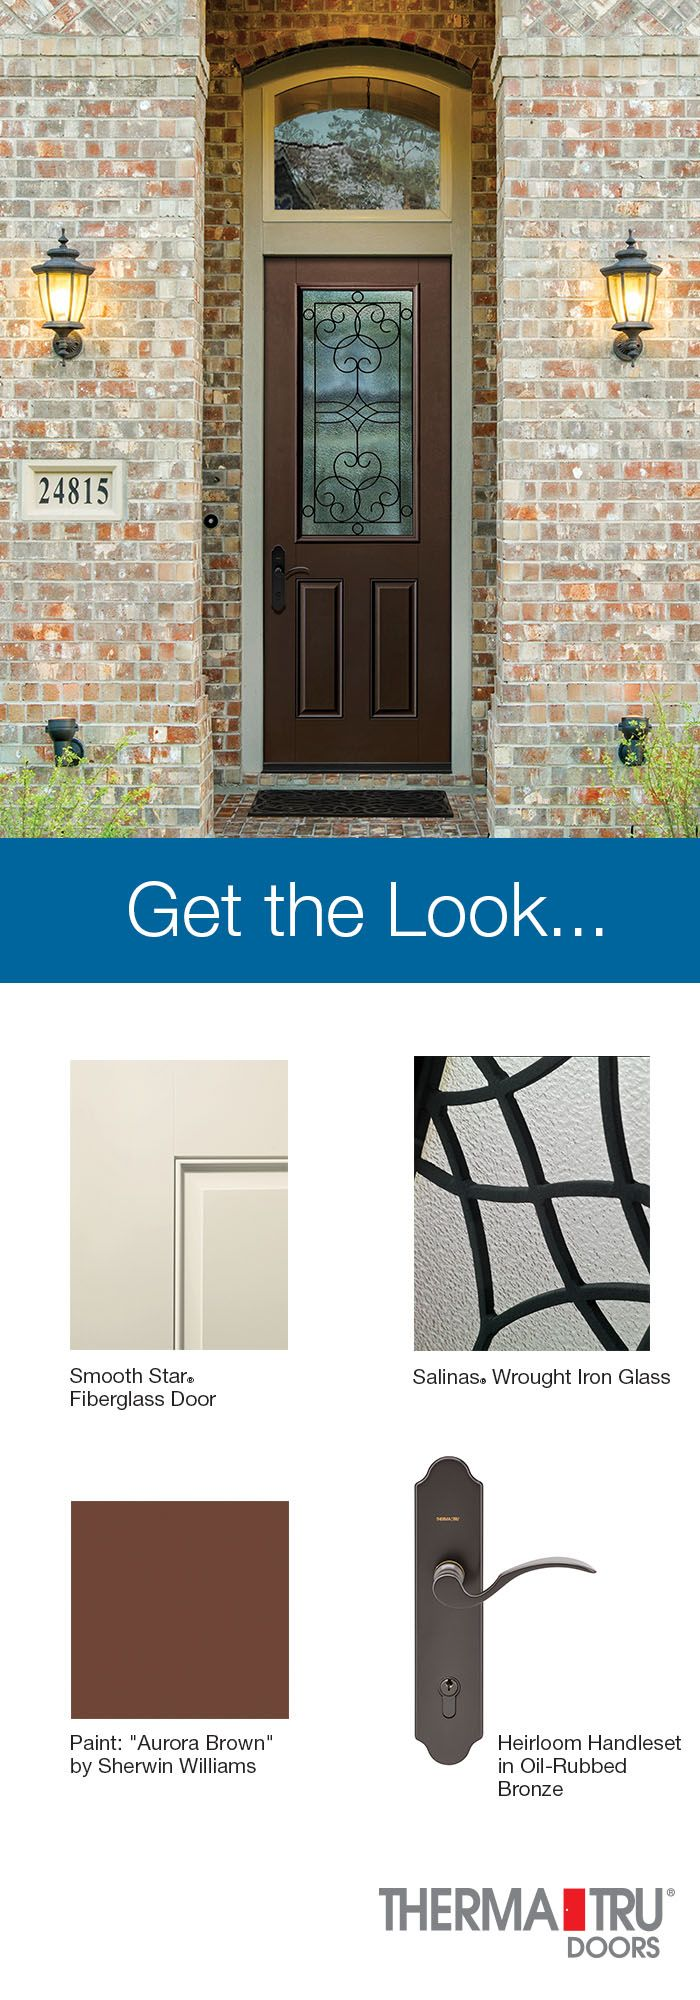 Best 20 Fiberglass Entry Doors Ideas On Pinterest: 20 Best Images About Get The Look... On Pinterest